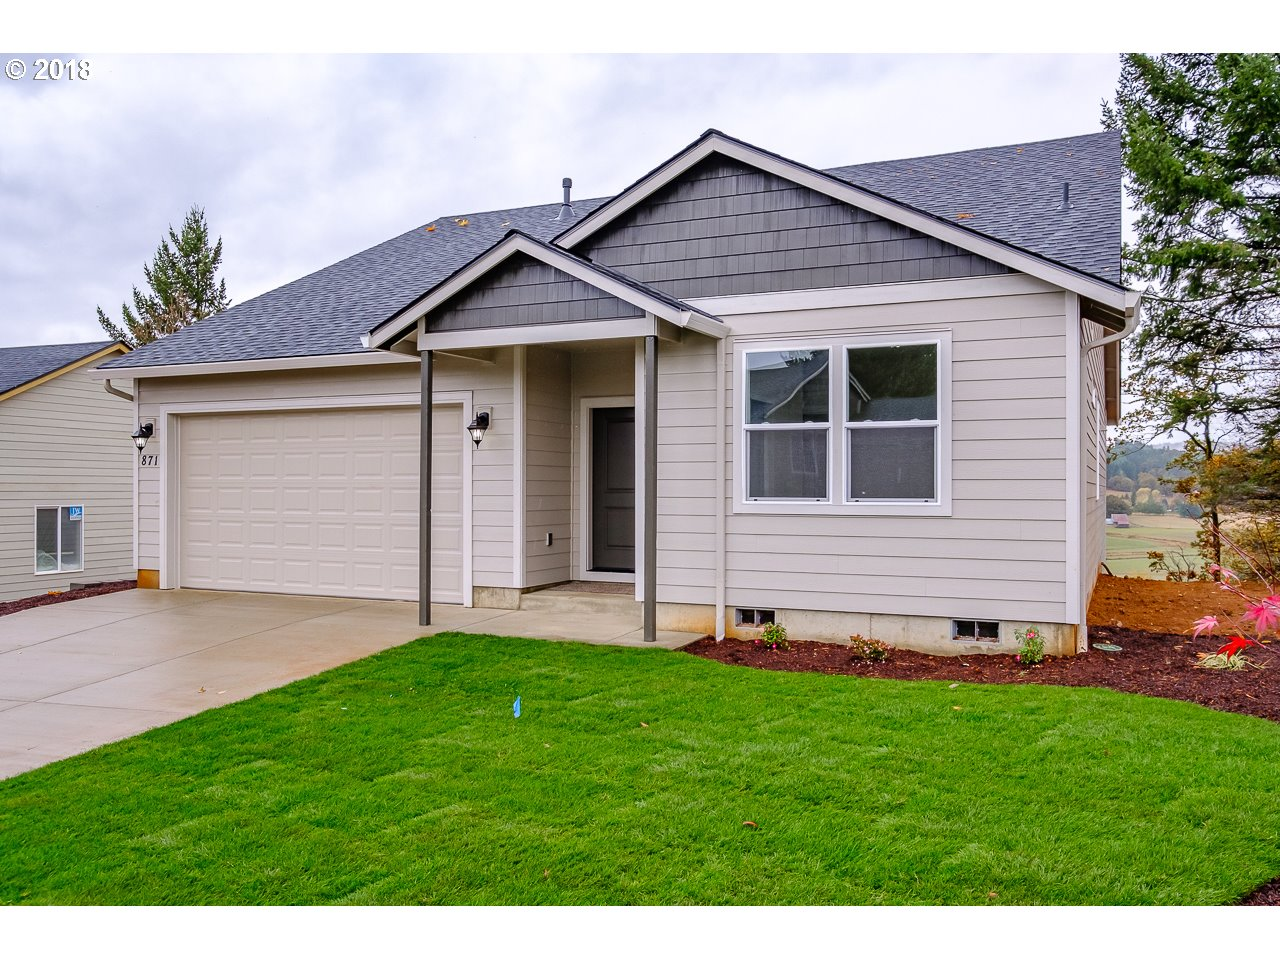 345 NW 6TH ST Willamina, OR 97396 - MLS #: 18314548